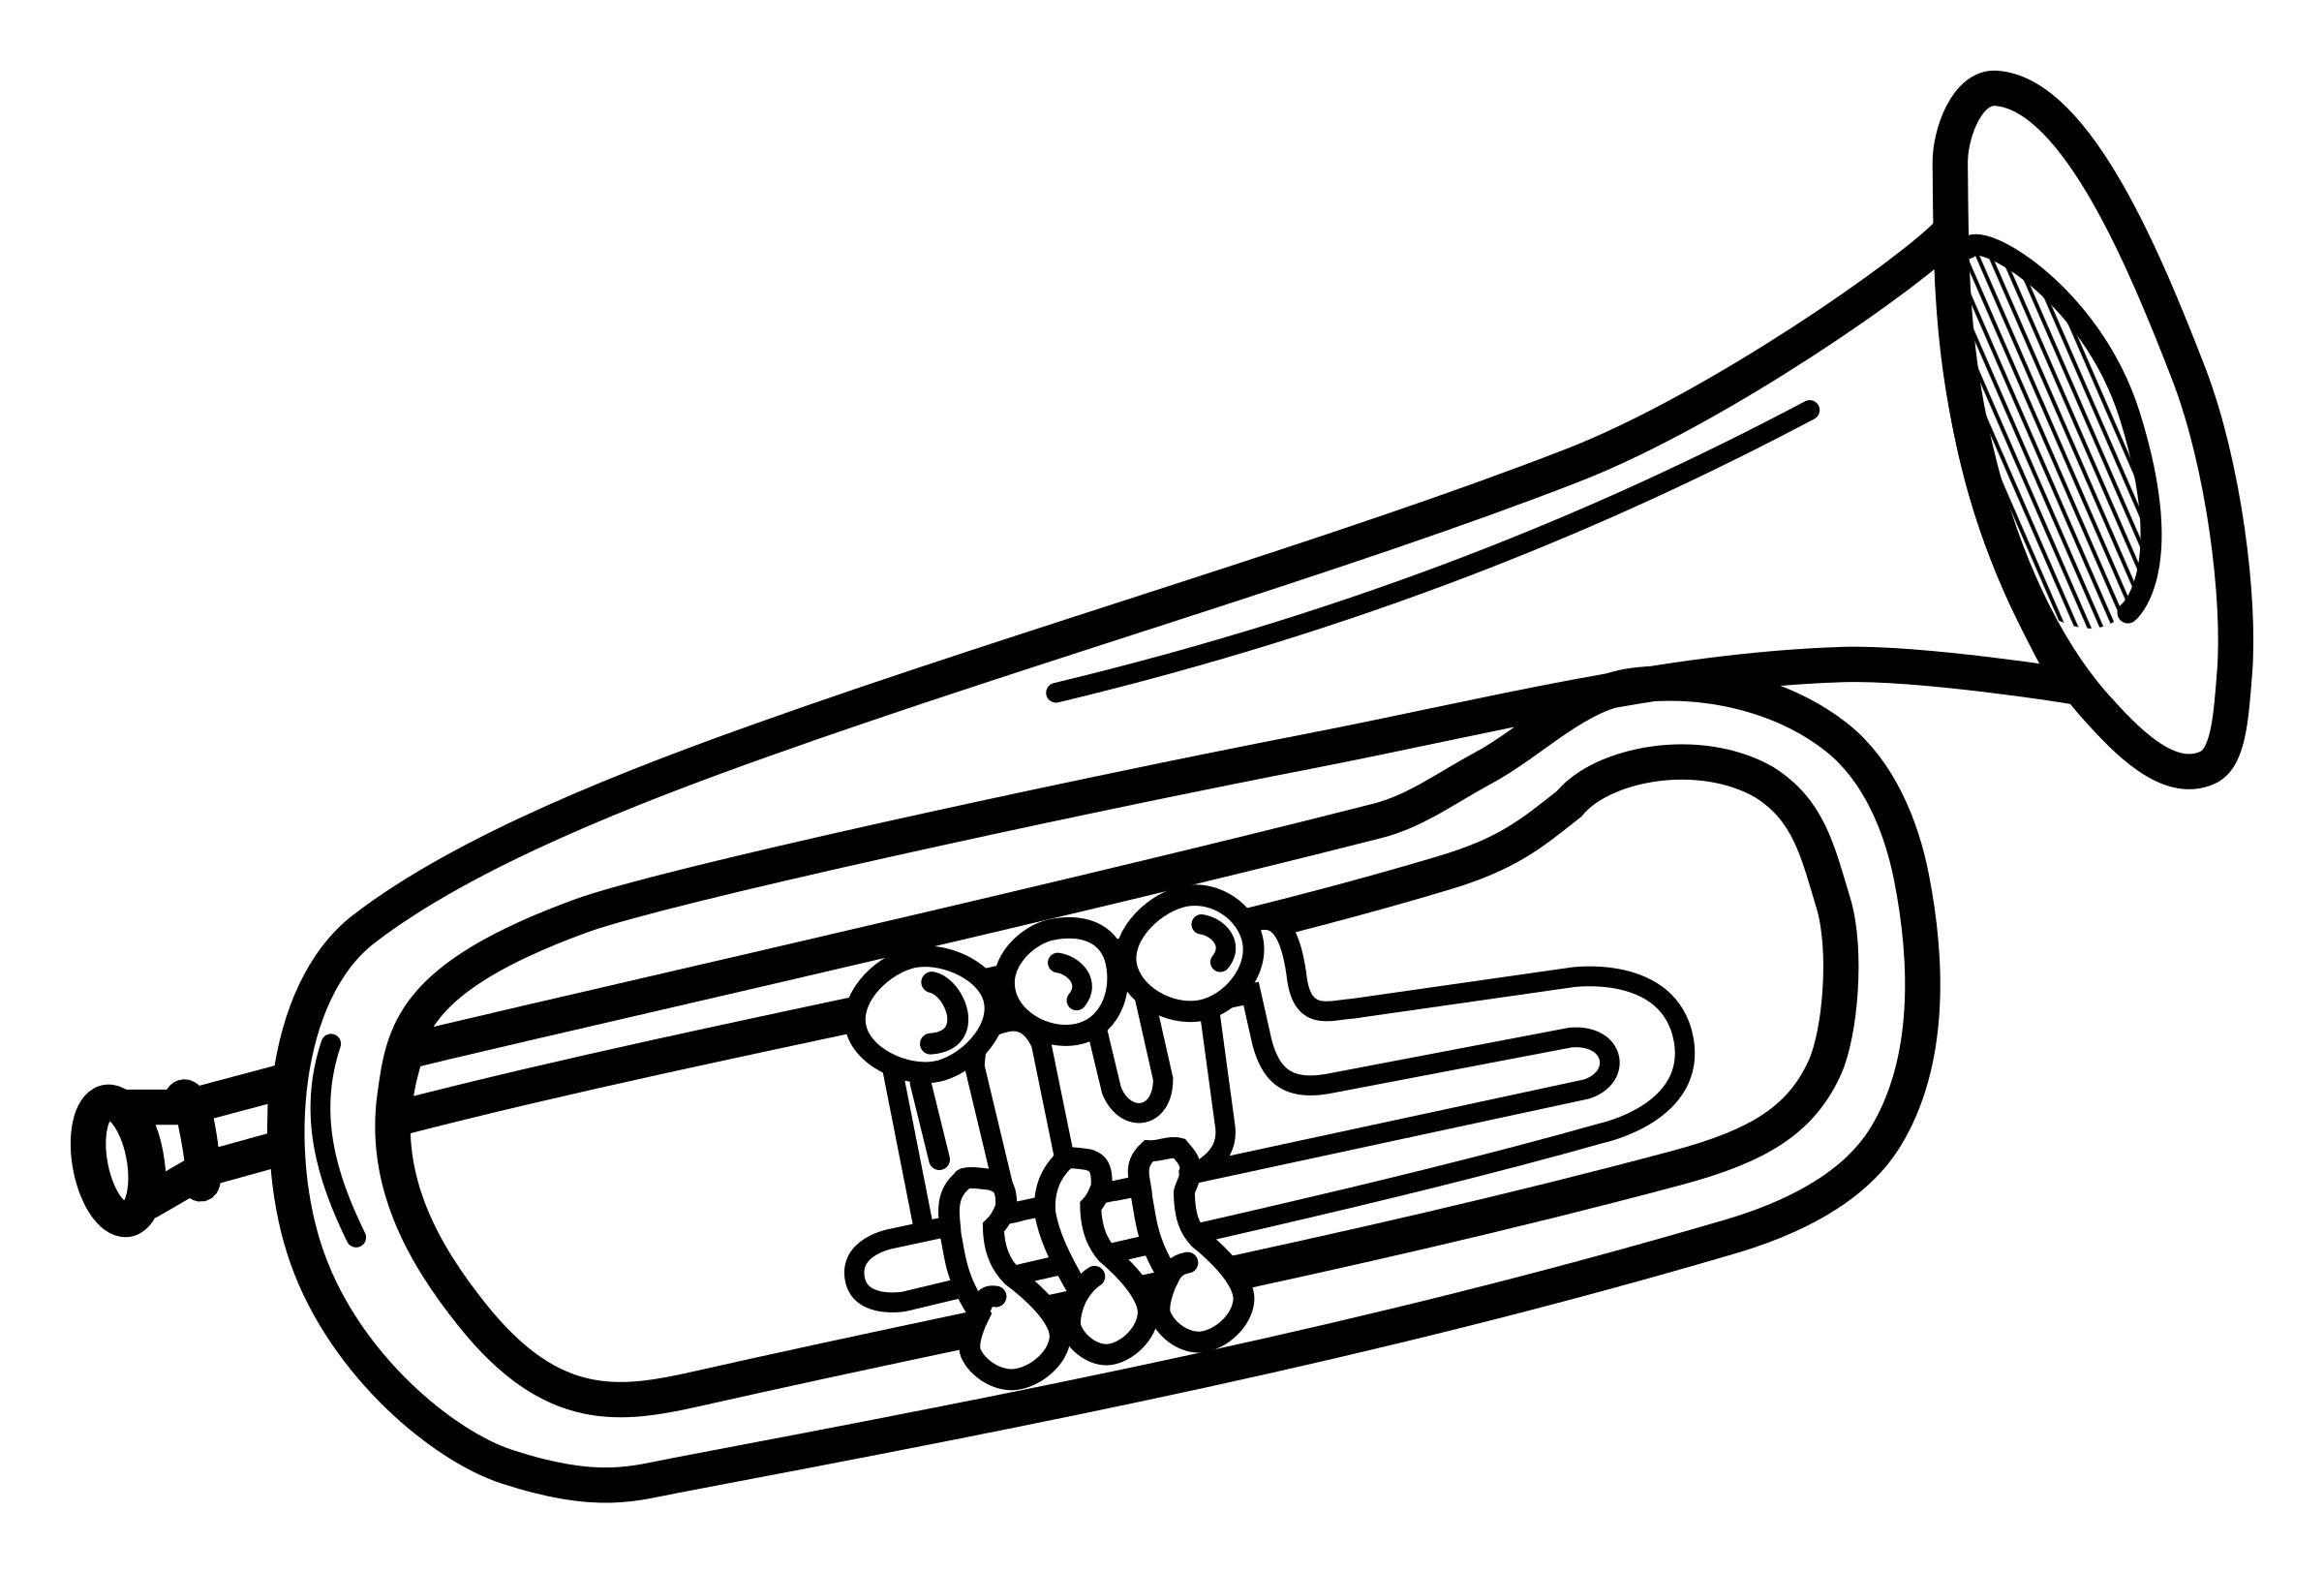 Trumpet clip art free clipart images 3 wikiclipart.